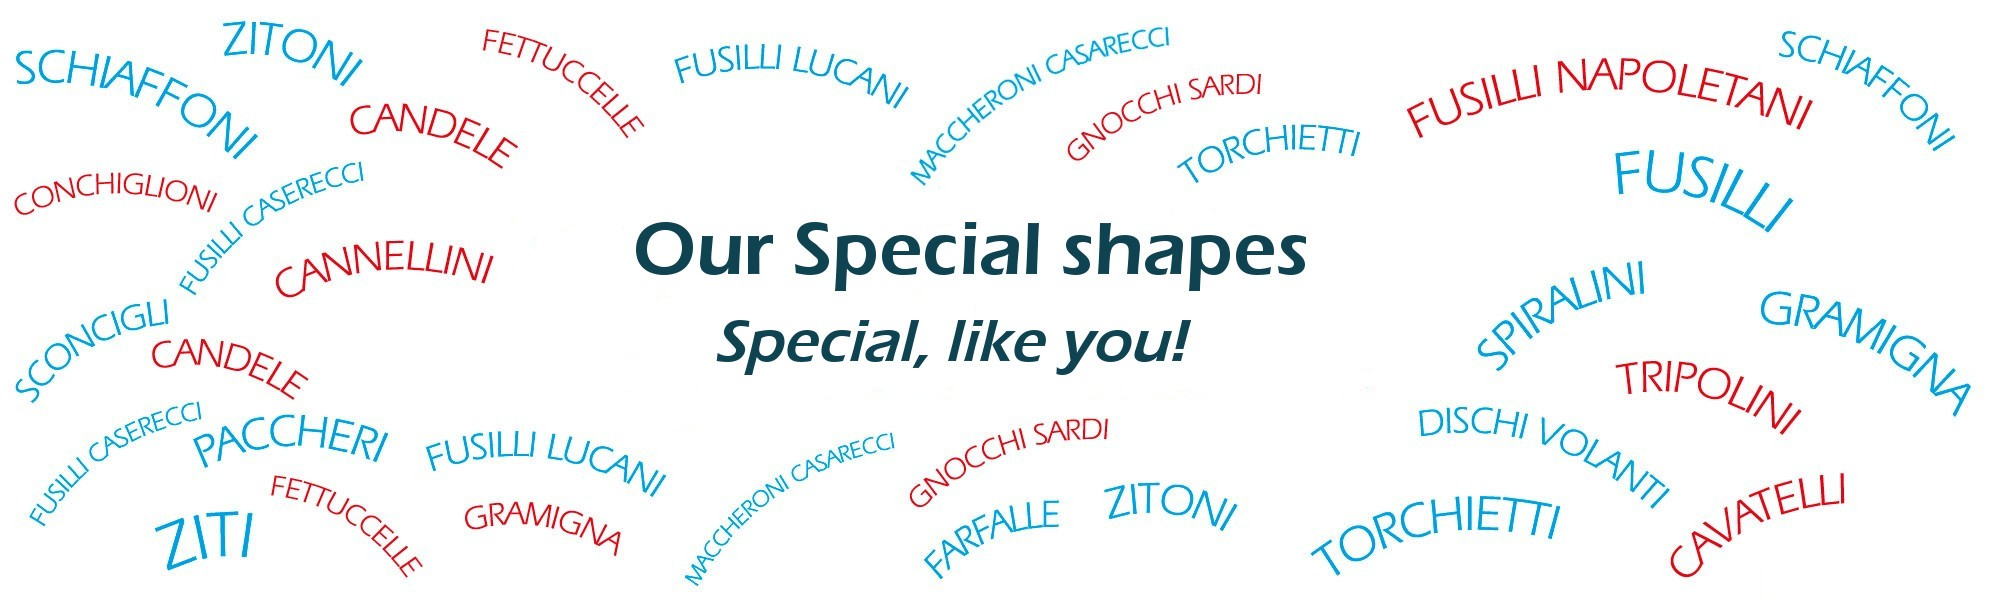 Our special shapes